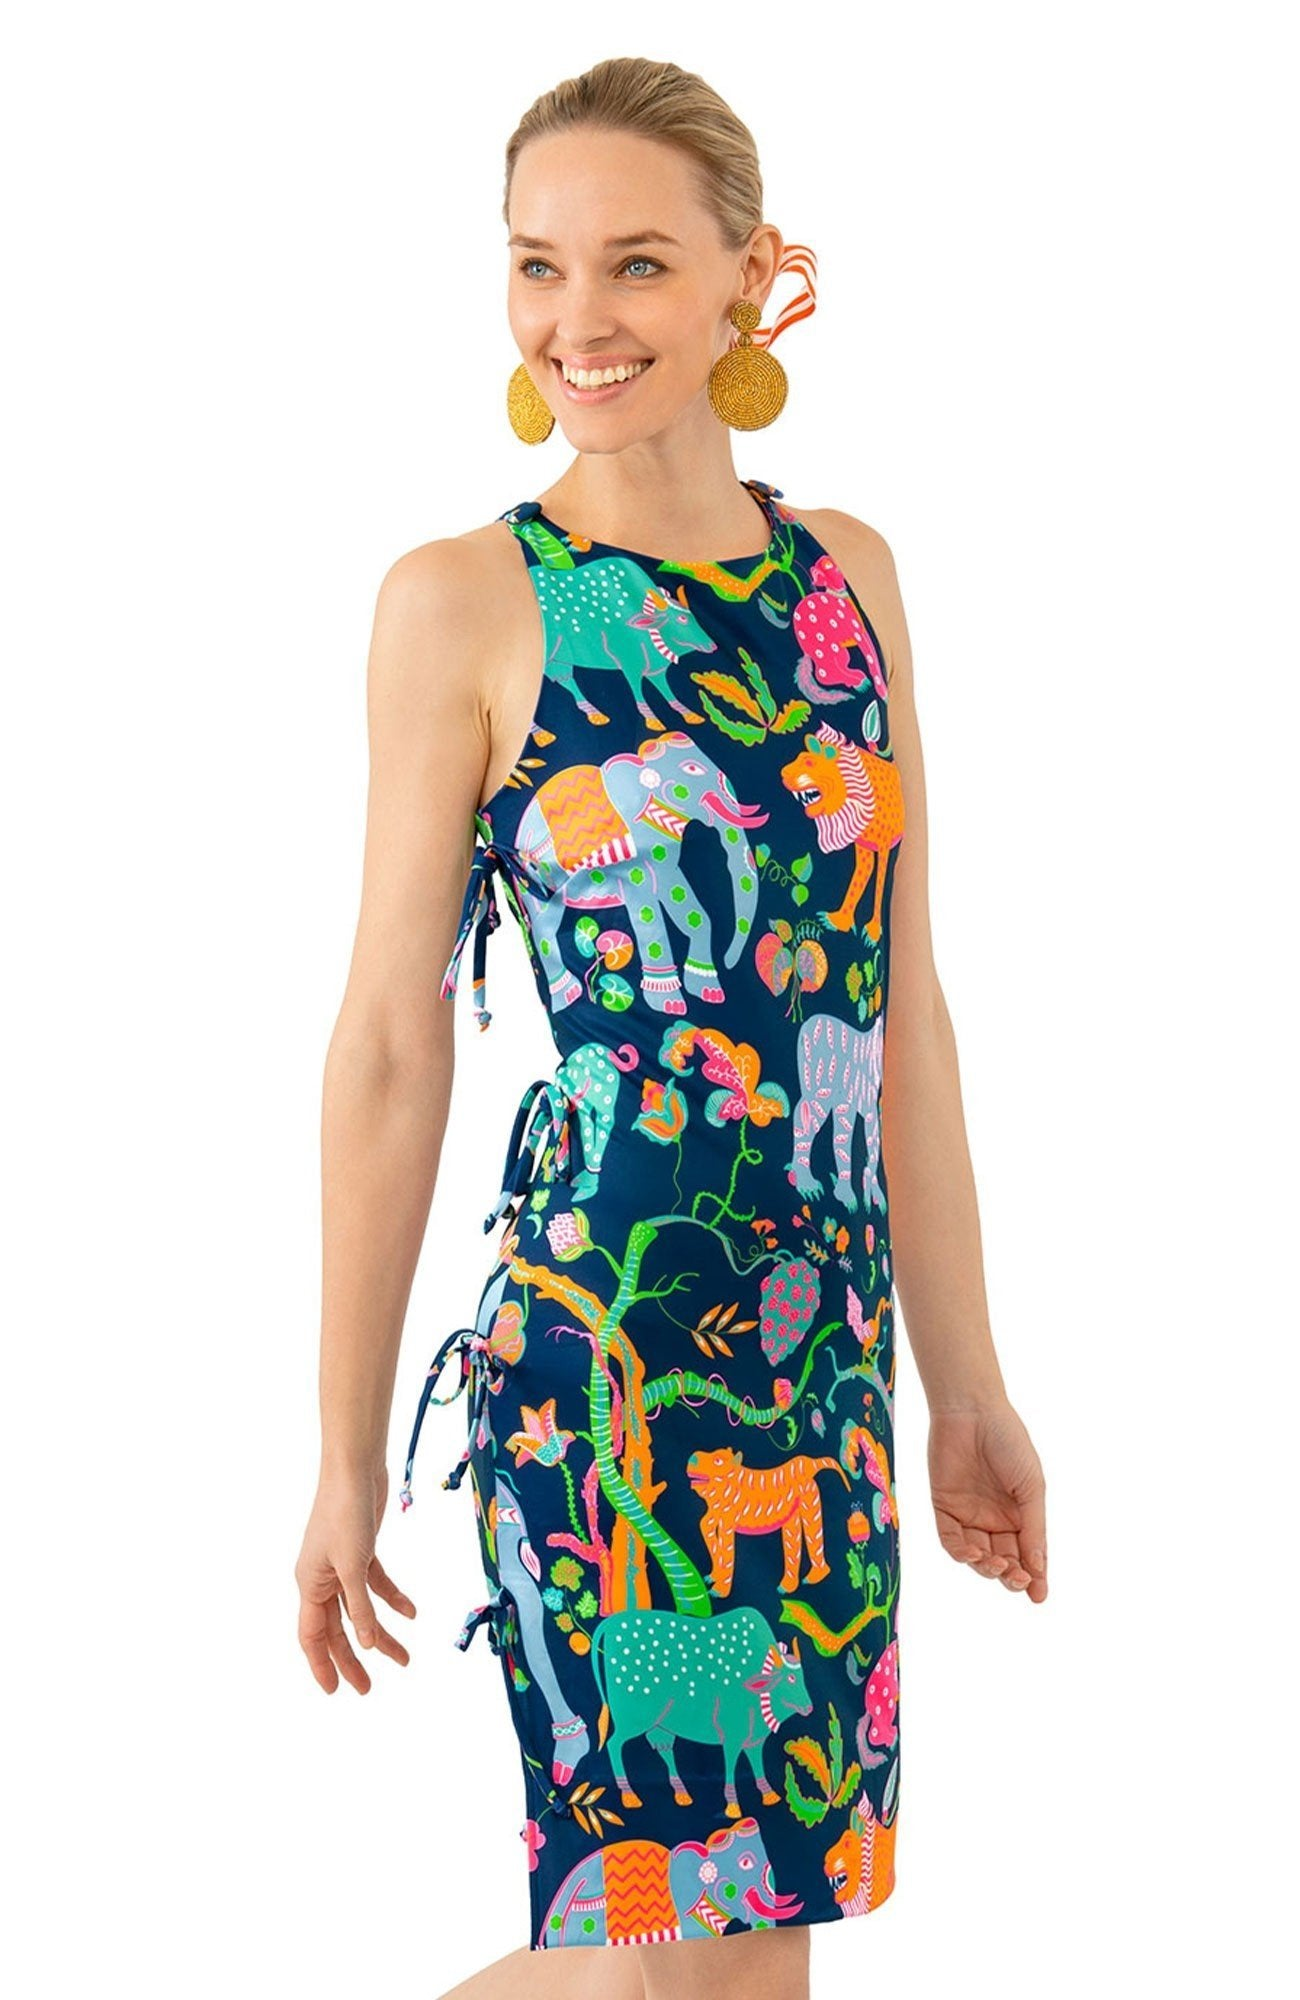 ANIMAL KINGDOM DRESS - JDSTAK - Molly's! A Chic and Unique Boutique